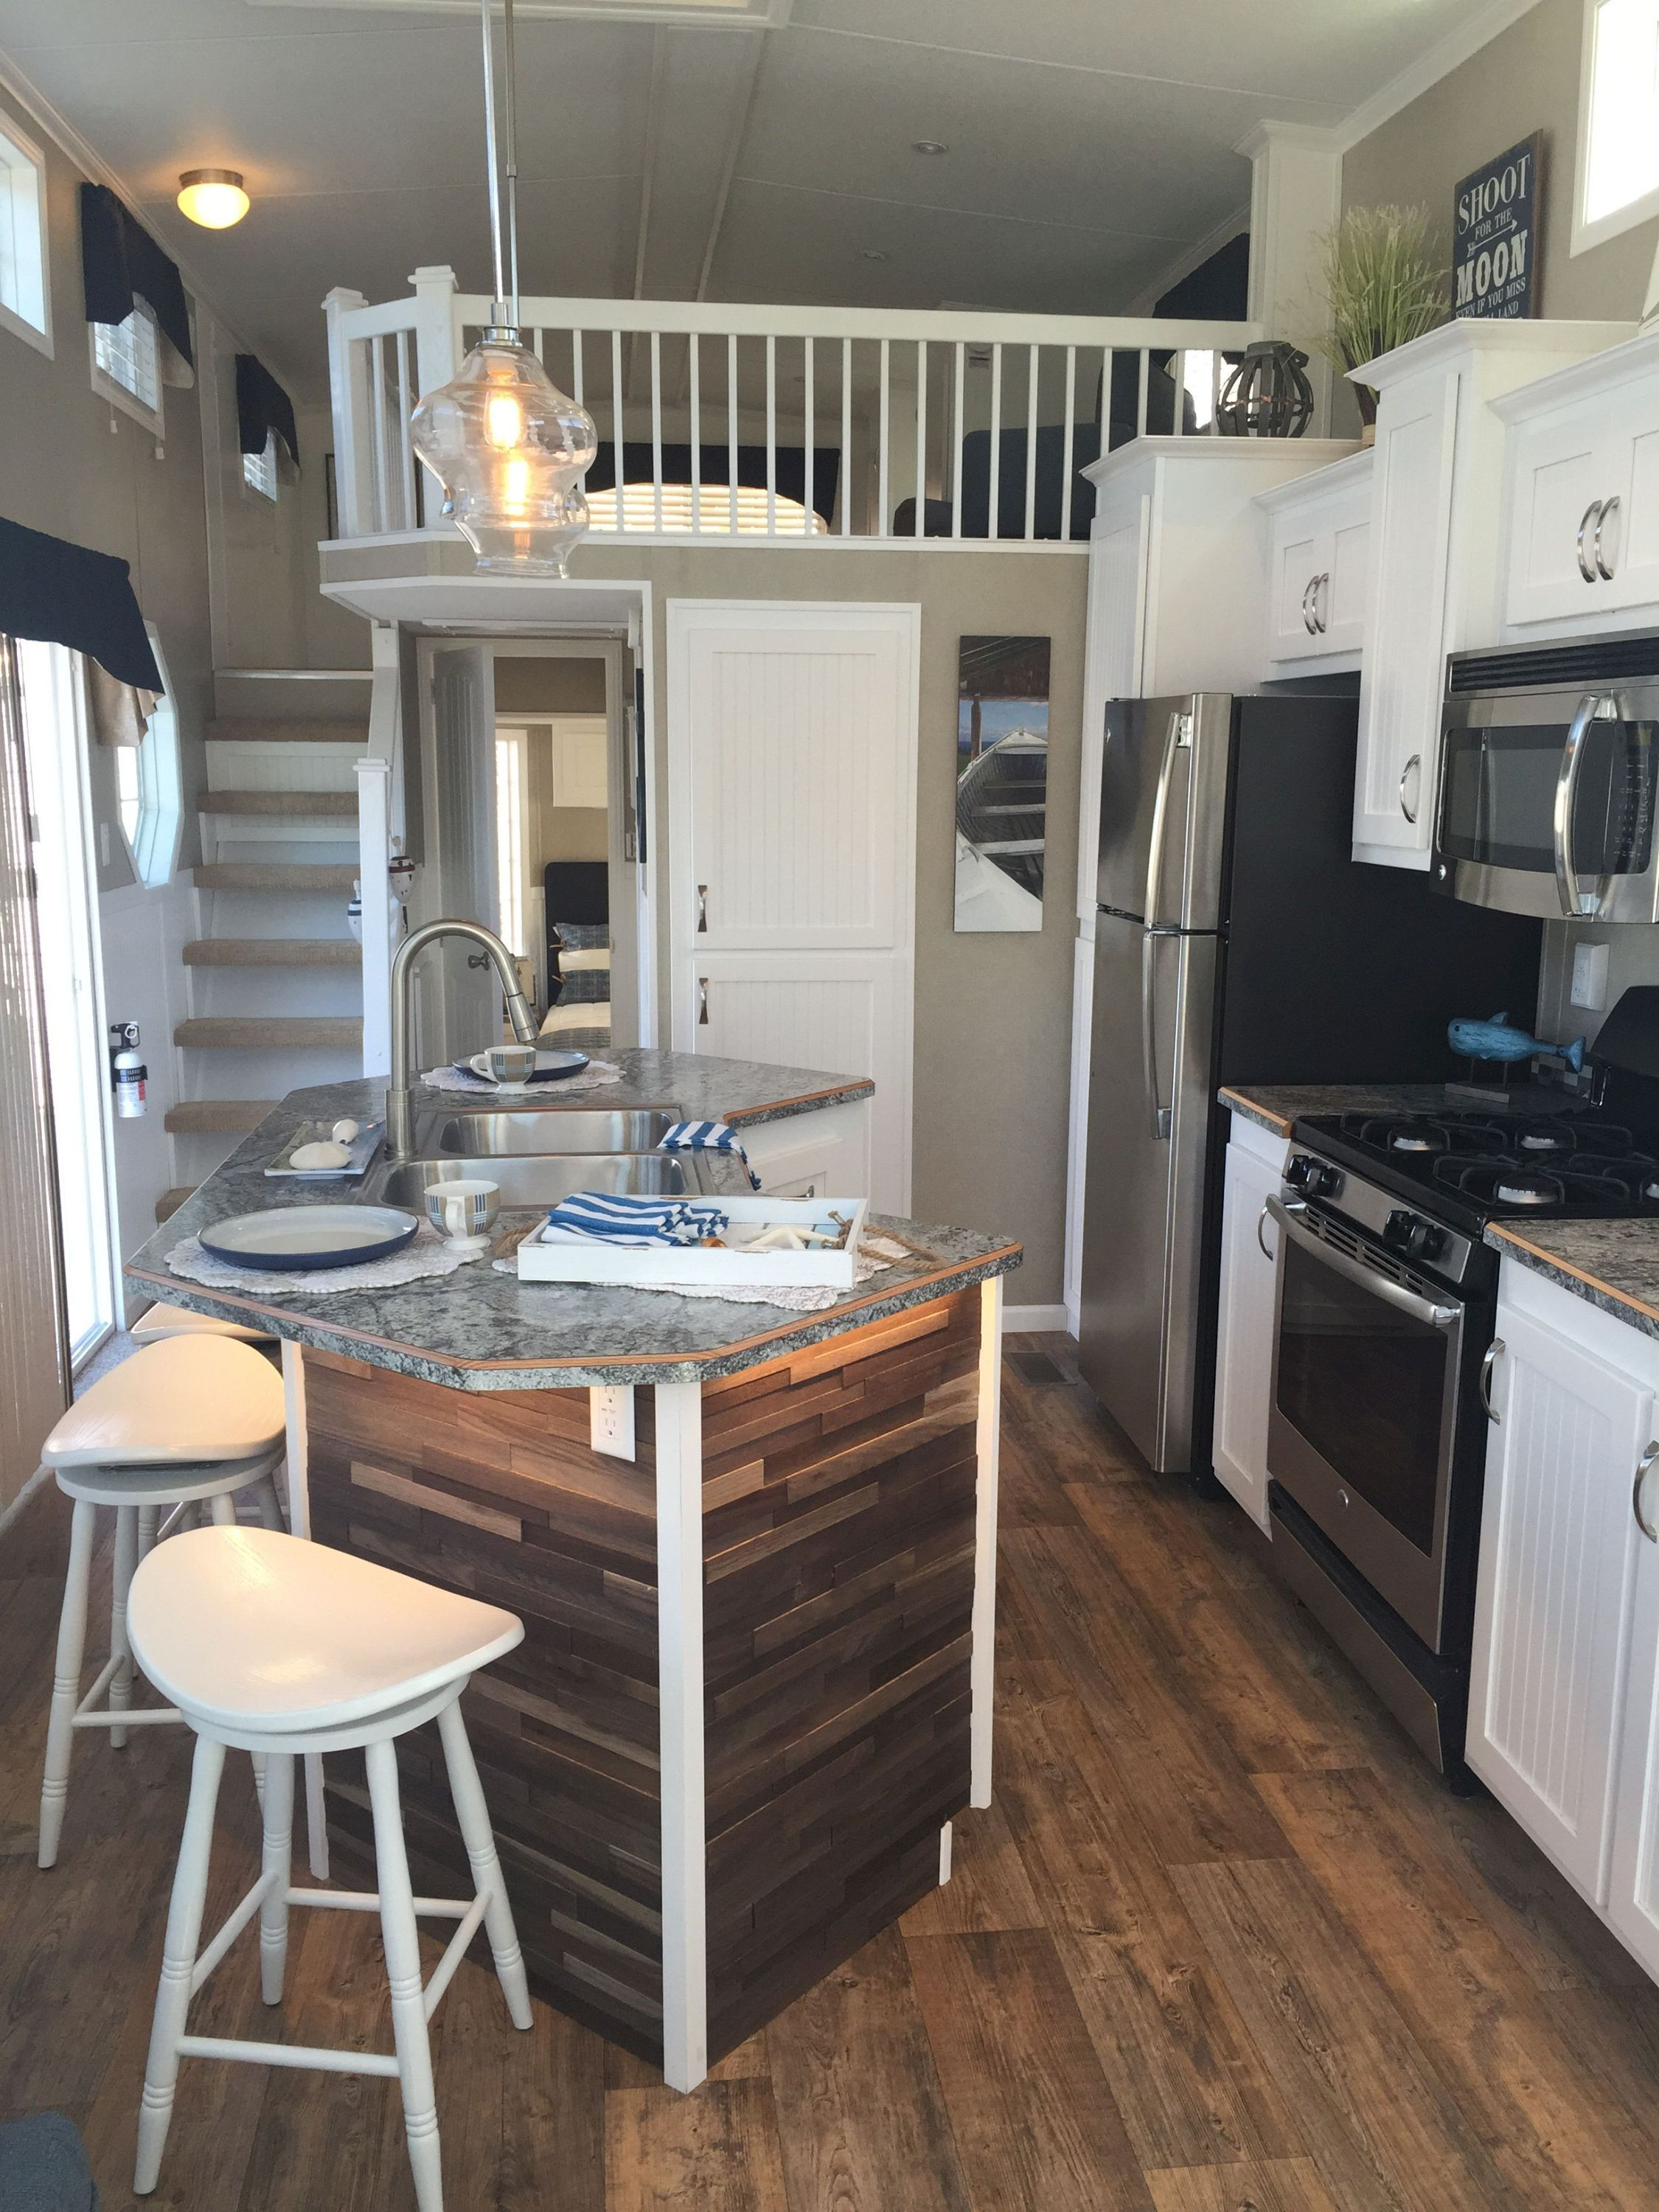 The Best Tiny House Interiors Plans We Could Actually Live ...